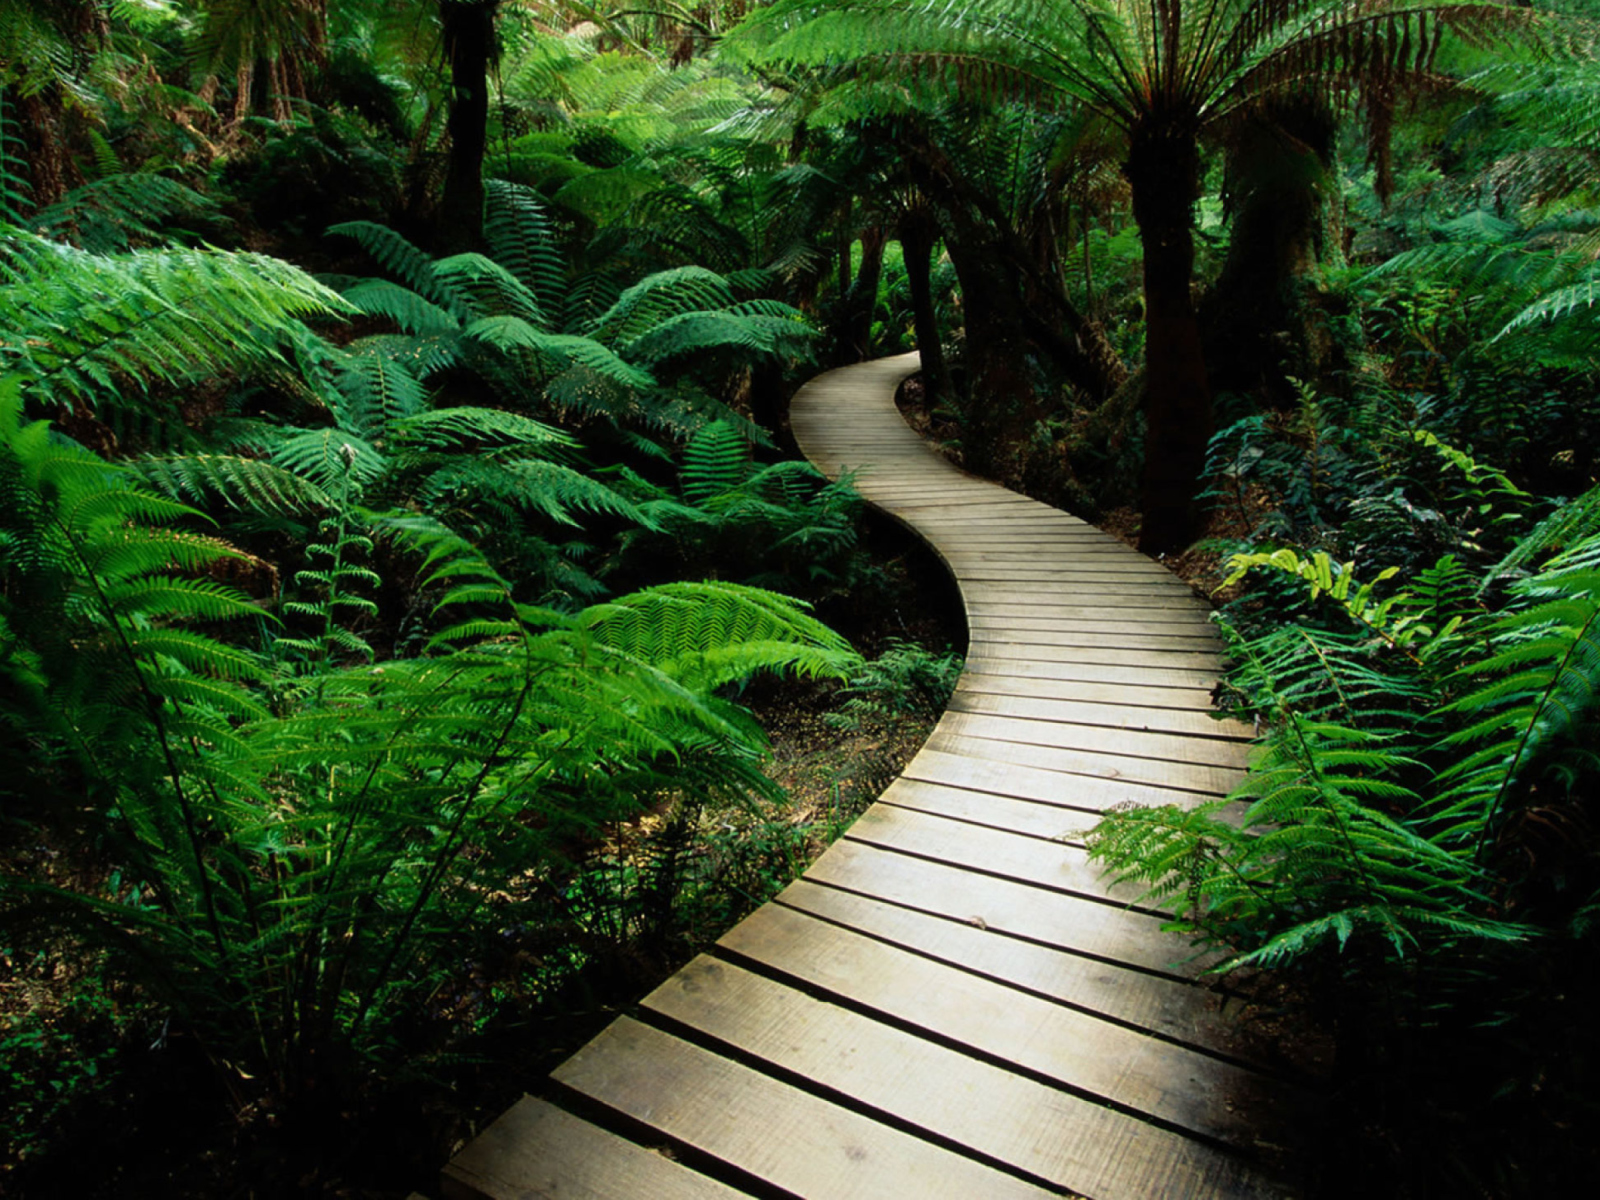 Wooden footpath in dense jungle